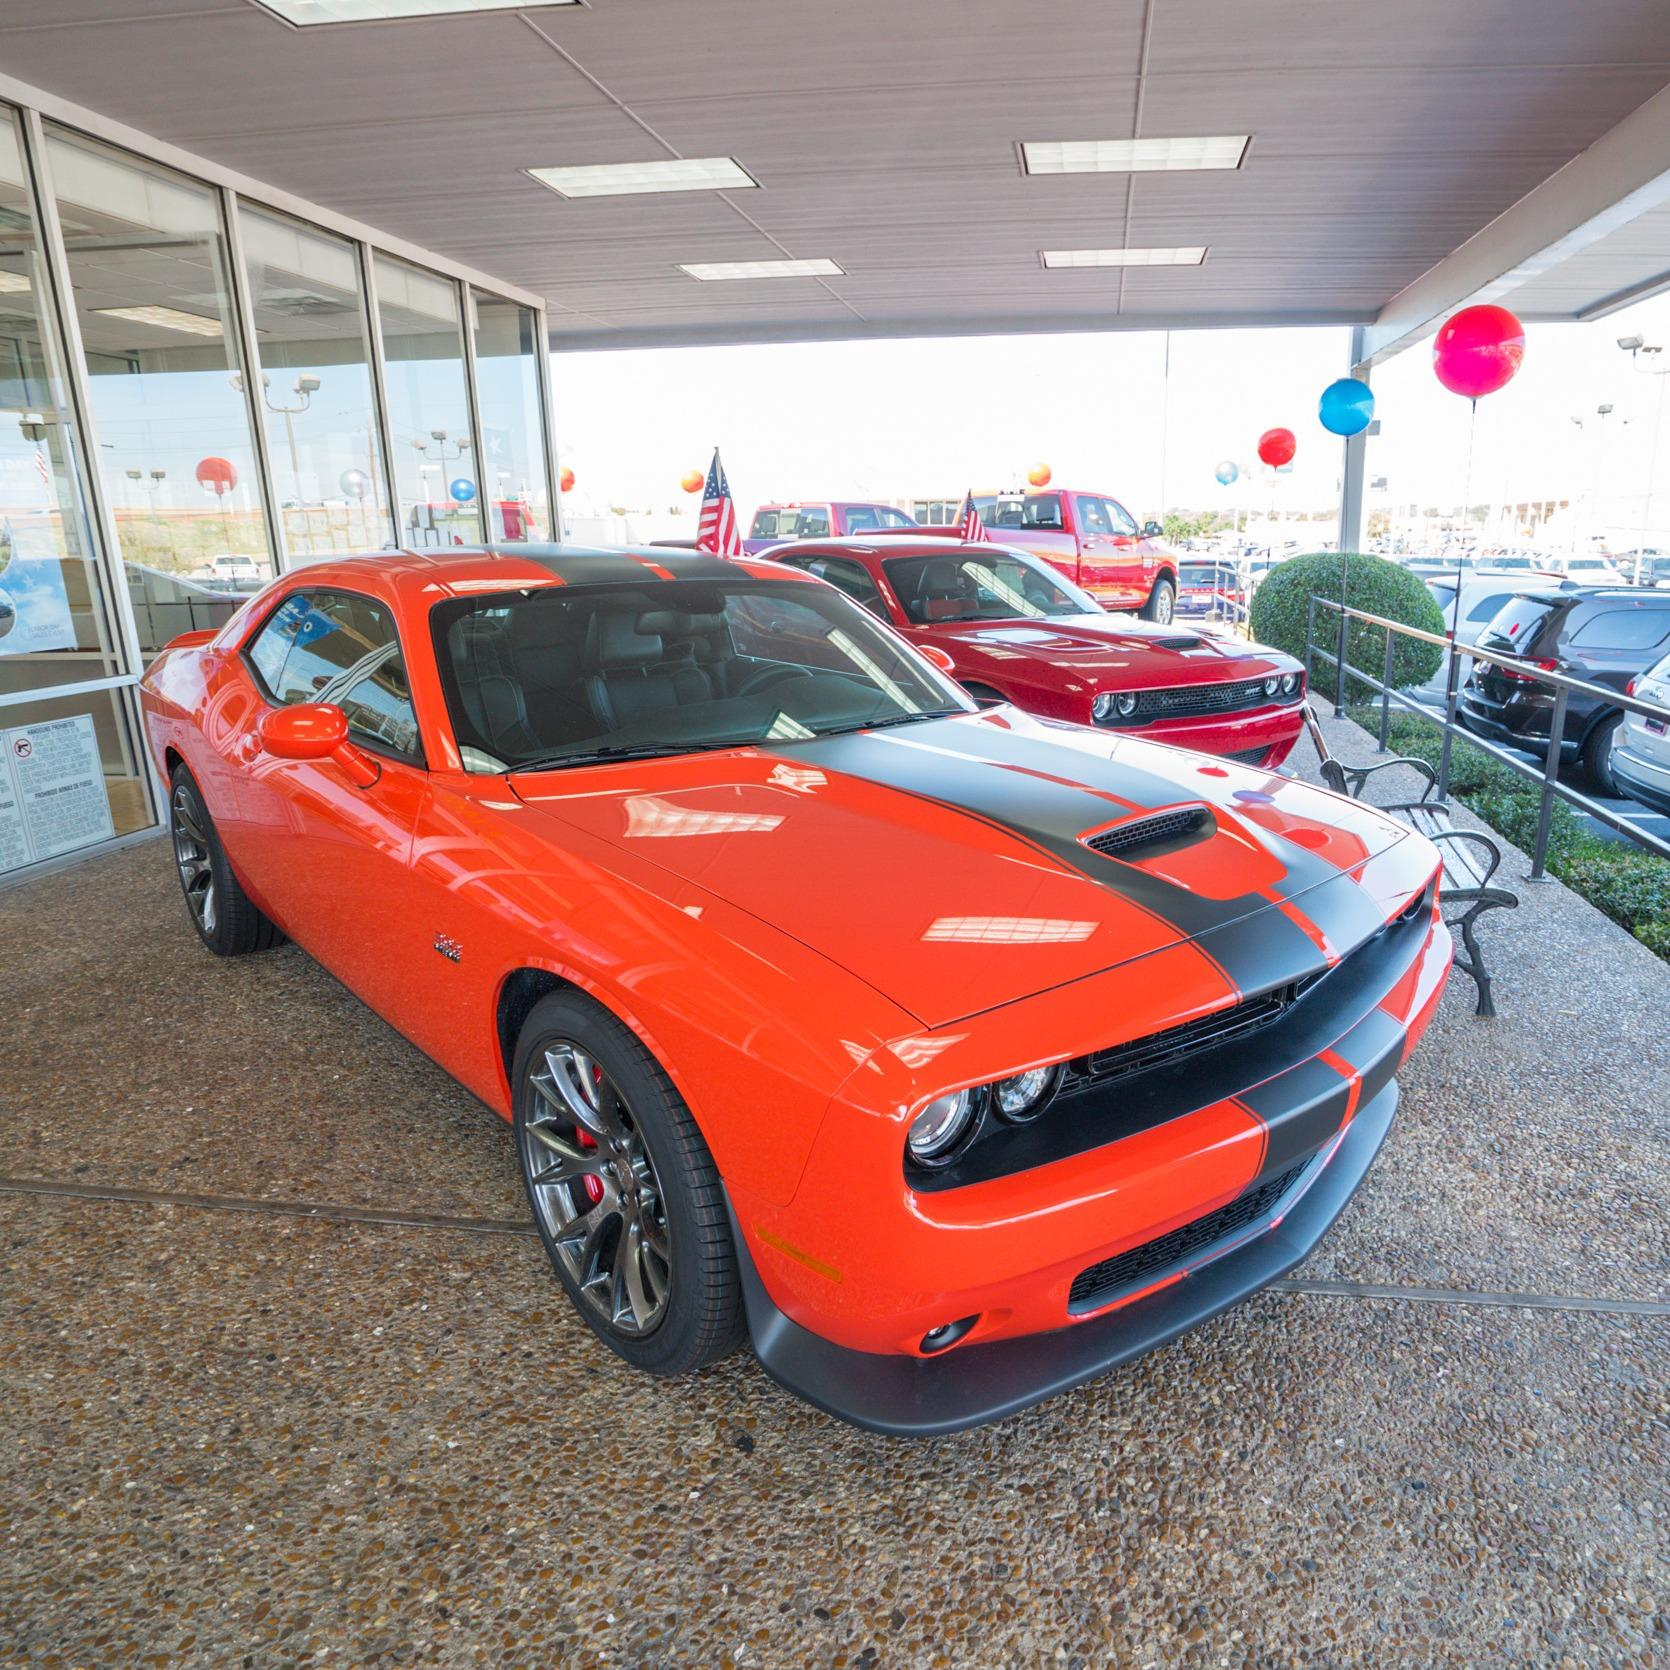 Car Dealer in TX Fort Worth 76180 AutoNation Chrysler Dodge Jeep RAM North Richland Hills 7740 NE Loop 820  (817)522-4981